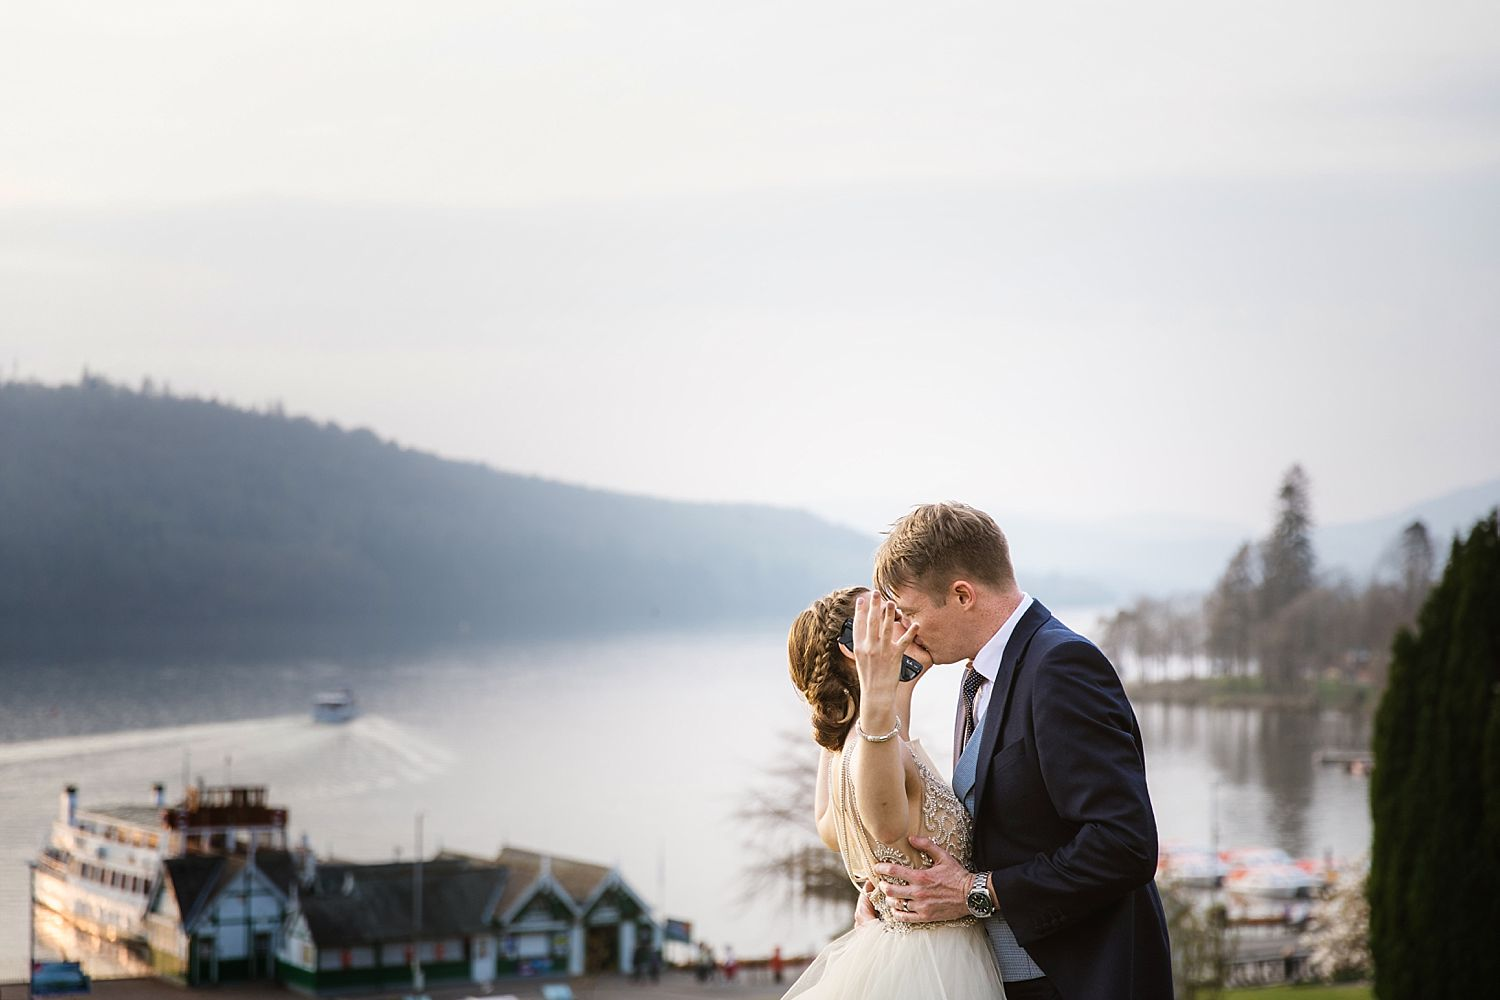 Bride and groom kiss, broide's arms outstretched with view of Lake Windermere in background, taken from Belsfield Hotel wedding